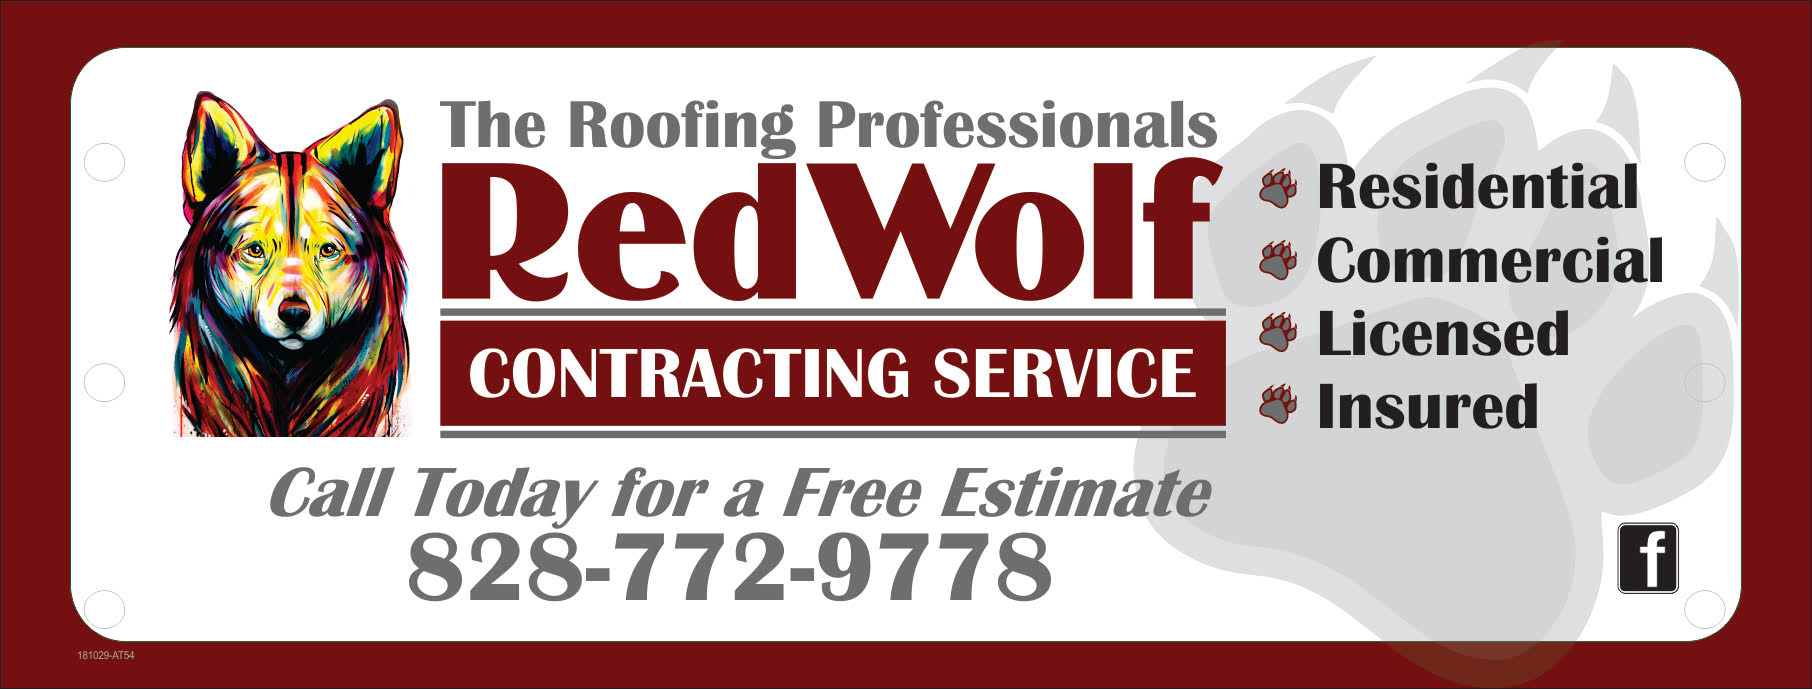 Looking for a trusted roofing contractor in WNC to take care of your roofing repairs or replacement?  Have you discovered a leak in your roof during these past heavy rains and need a free roof evaluation?  Contact Matt and the team (828)772-9778 and let them take care of all of your roofing needs!  With a trusted name, and a reputation to back it up, Matt has all the credentials to repair your roof in a cost effective, professional manner.  Visit their website  www.nc-roofers.com  to see their work or set up an appointment!